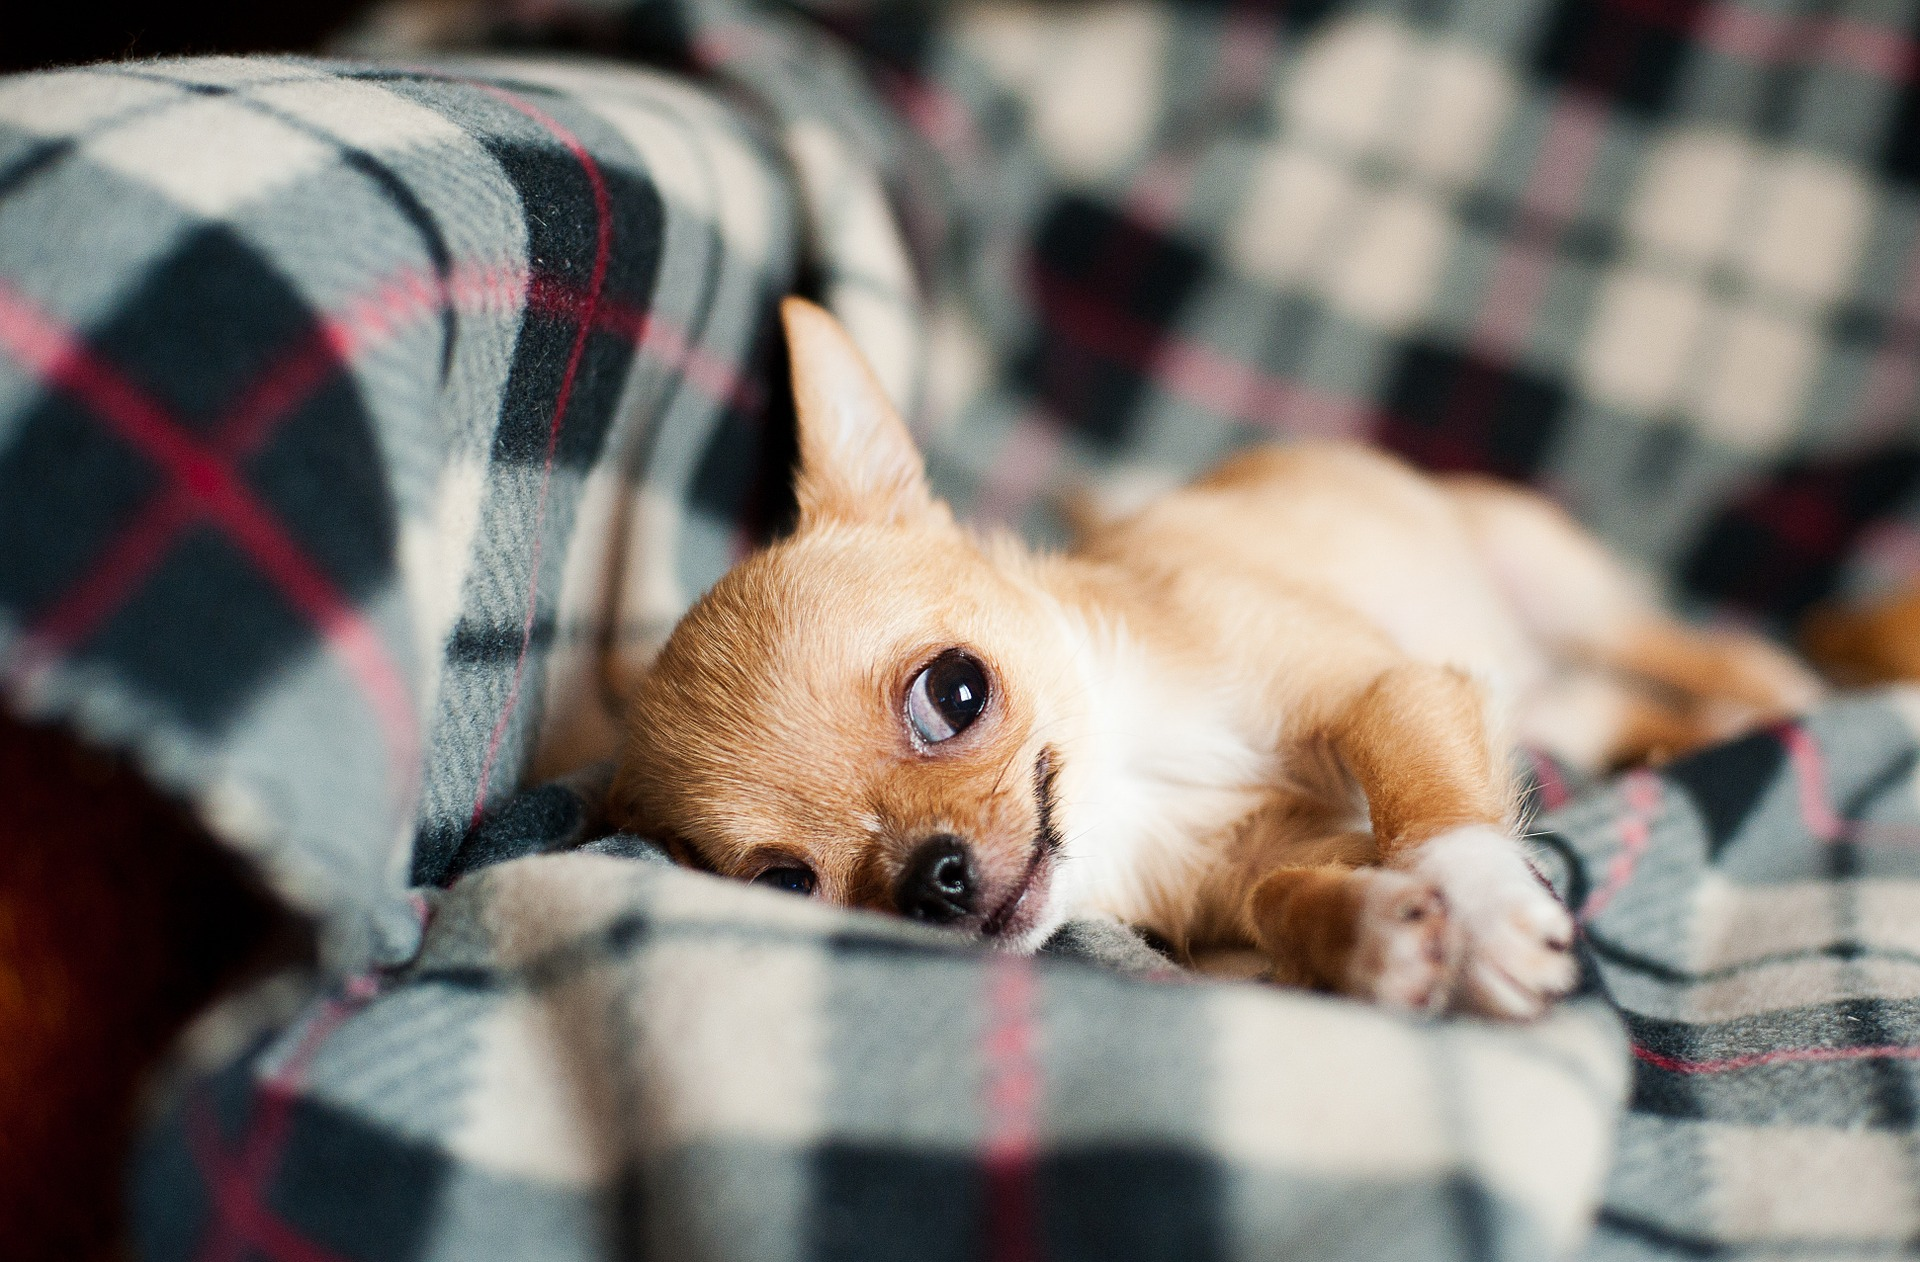 Chihuahua Puppies Everything You Need To Know The Dog People By Rover Com